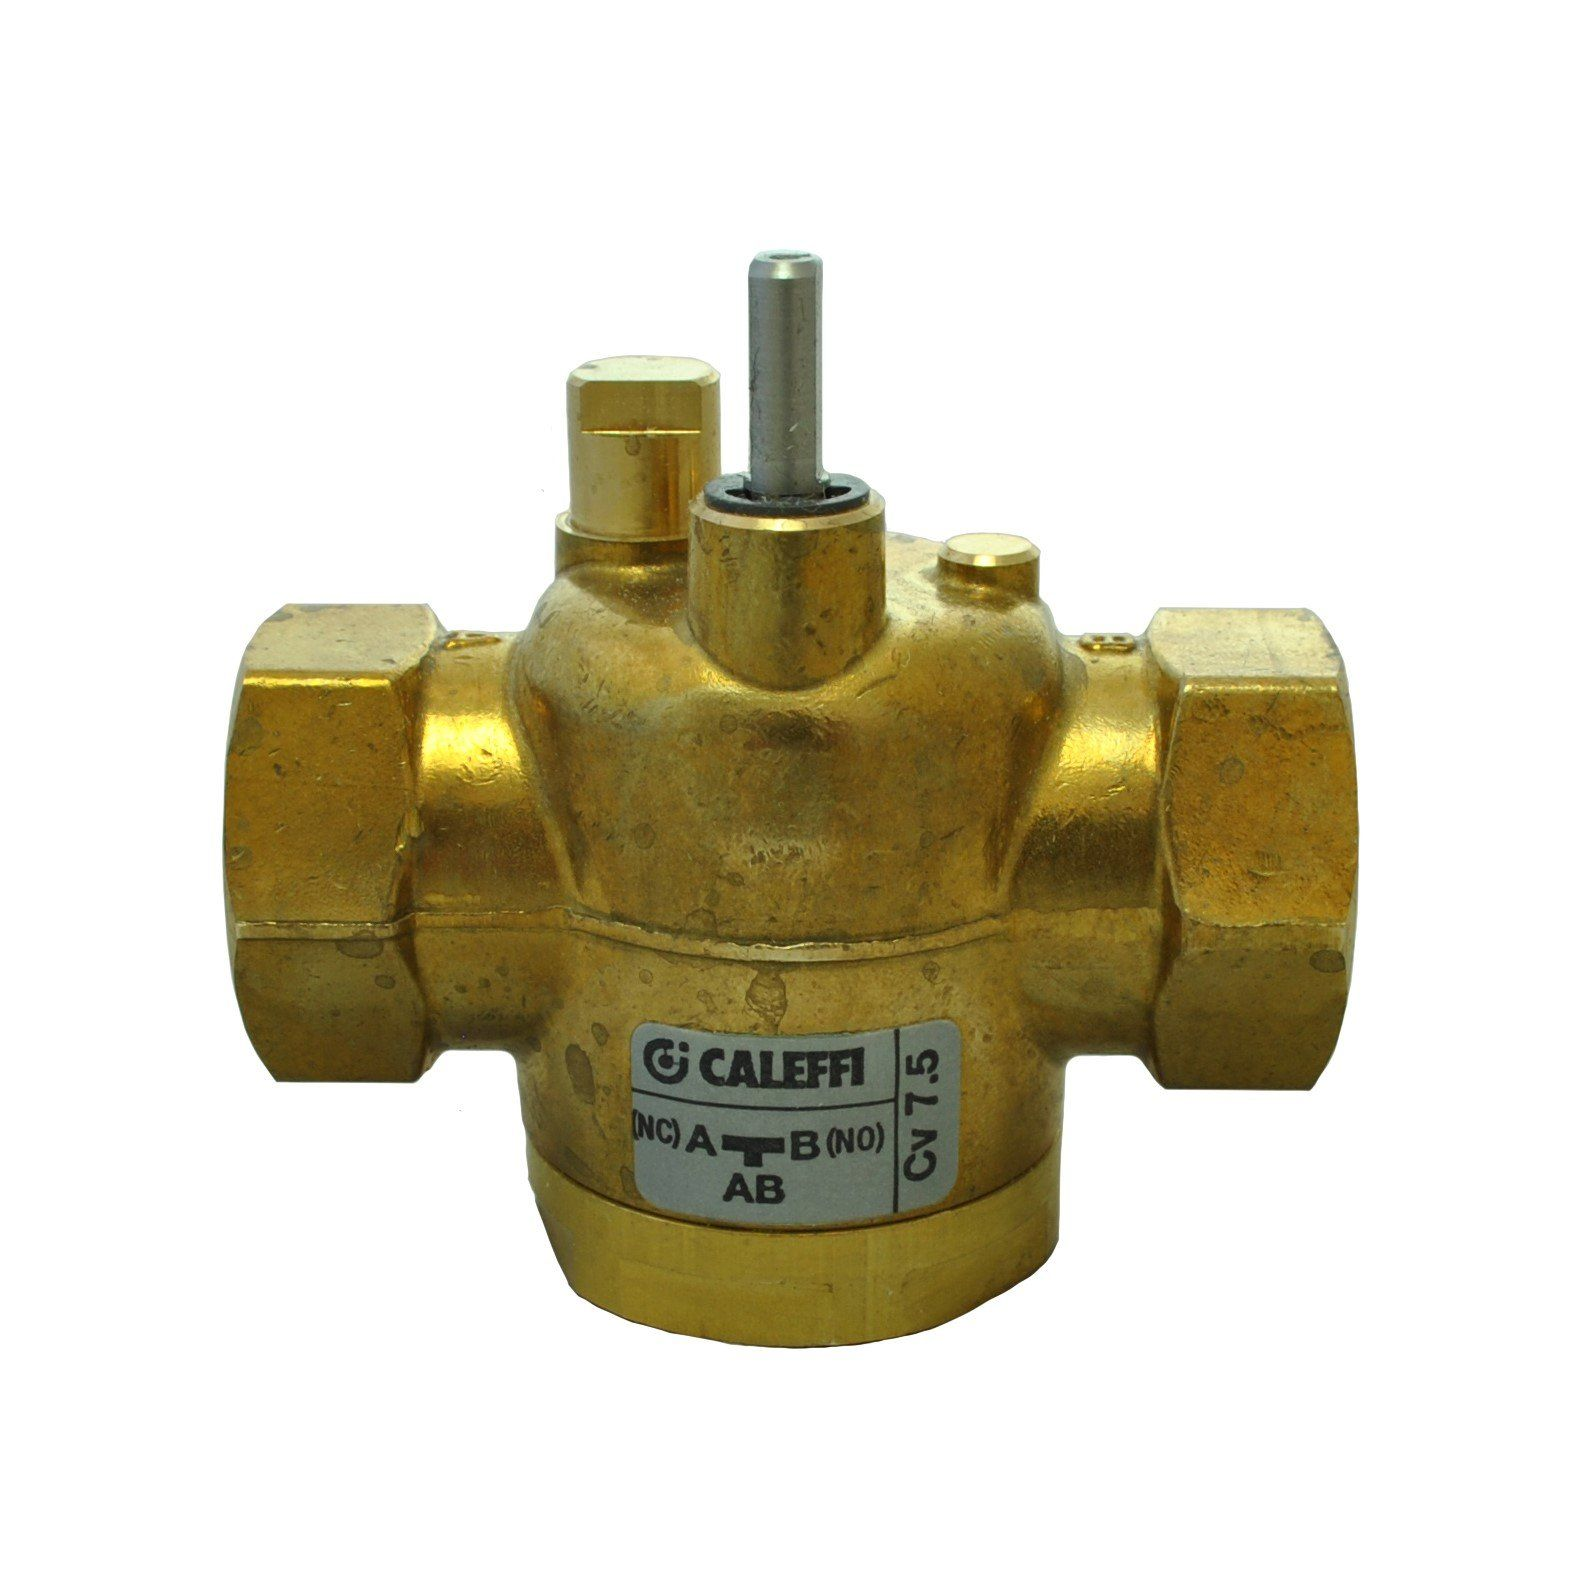 Caleffi Z-one - 3/4 NPT 3-way Straight Valve Body for Motorized Zone Valve